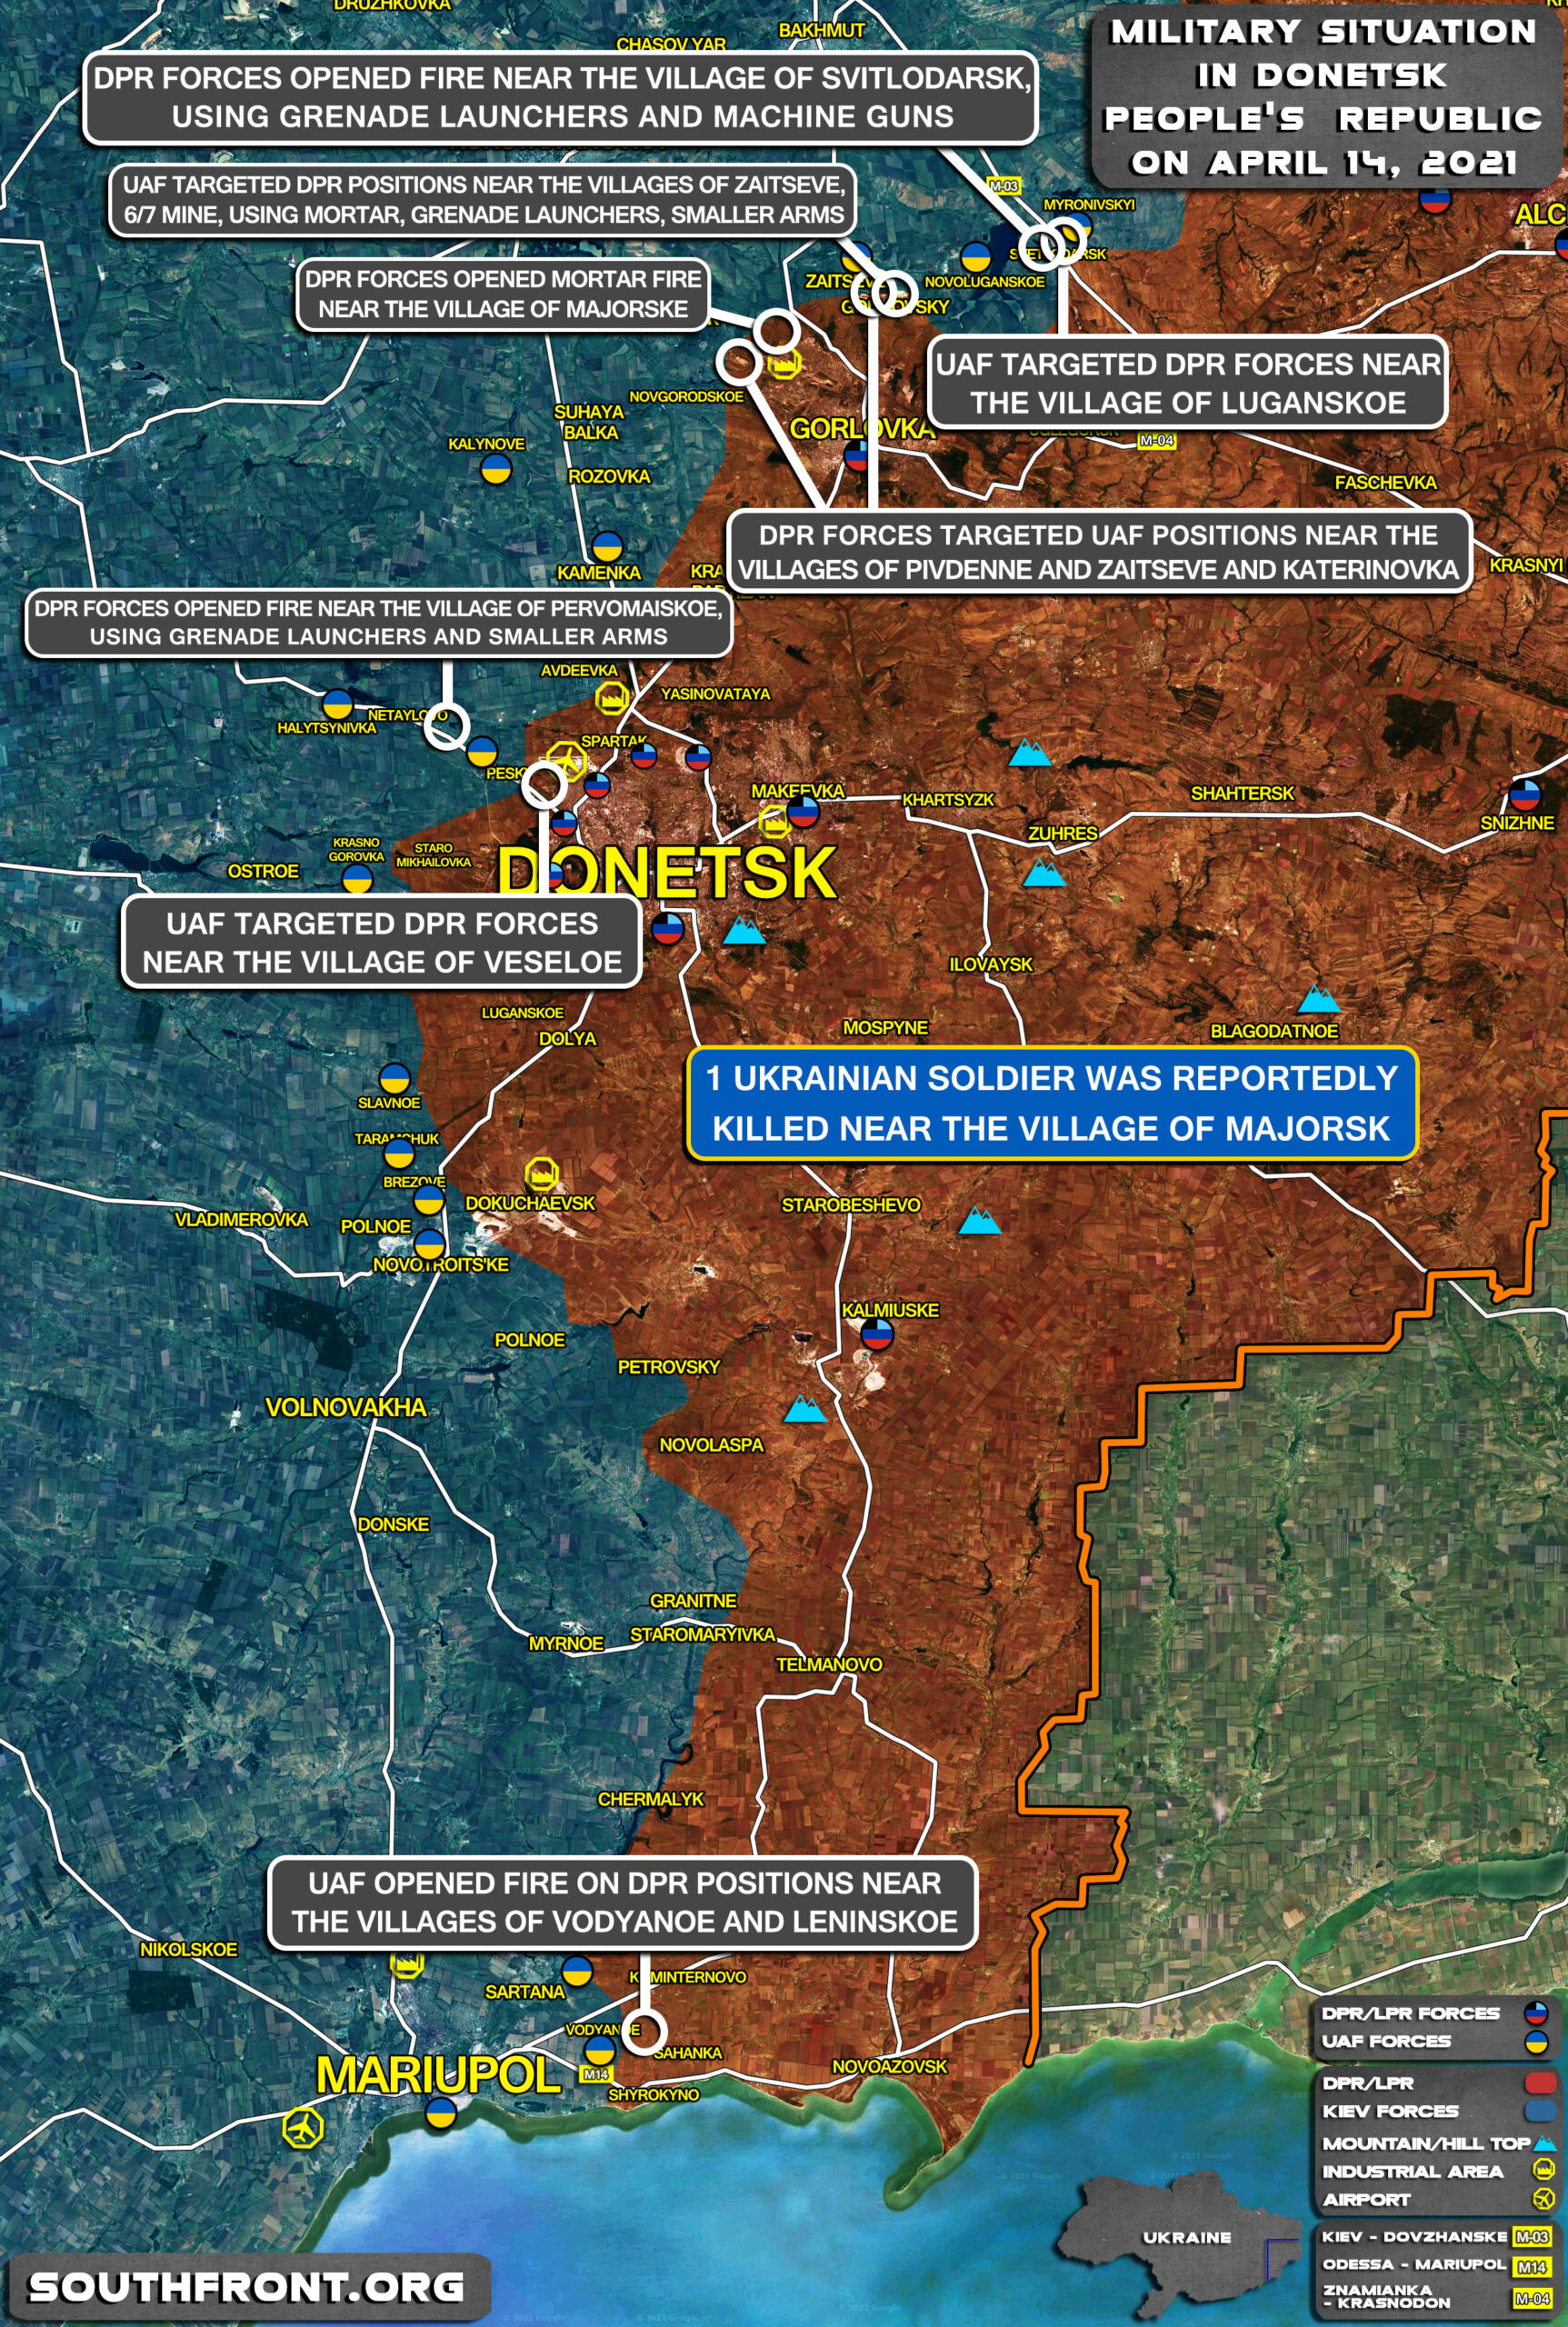 Military Situation In Donetsk People's Republic On April 14, 2021 (Map Update)